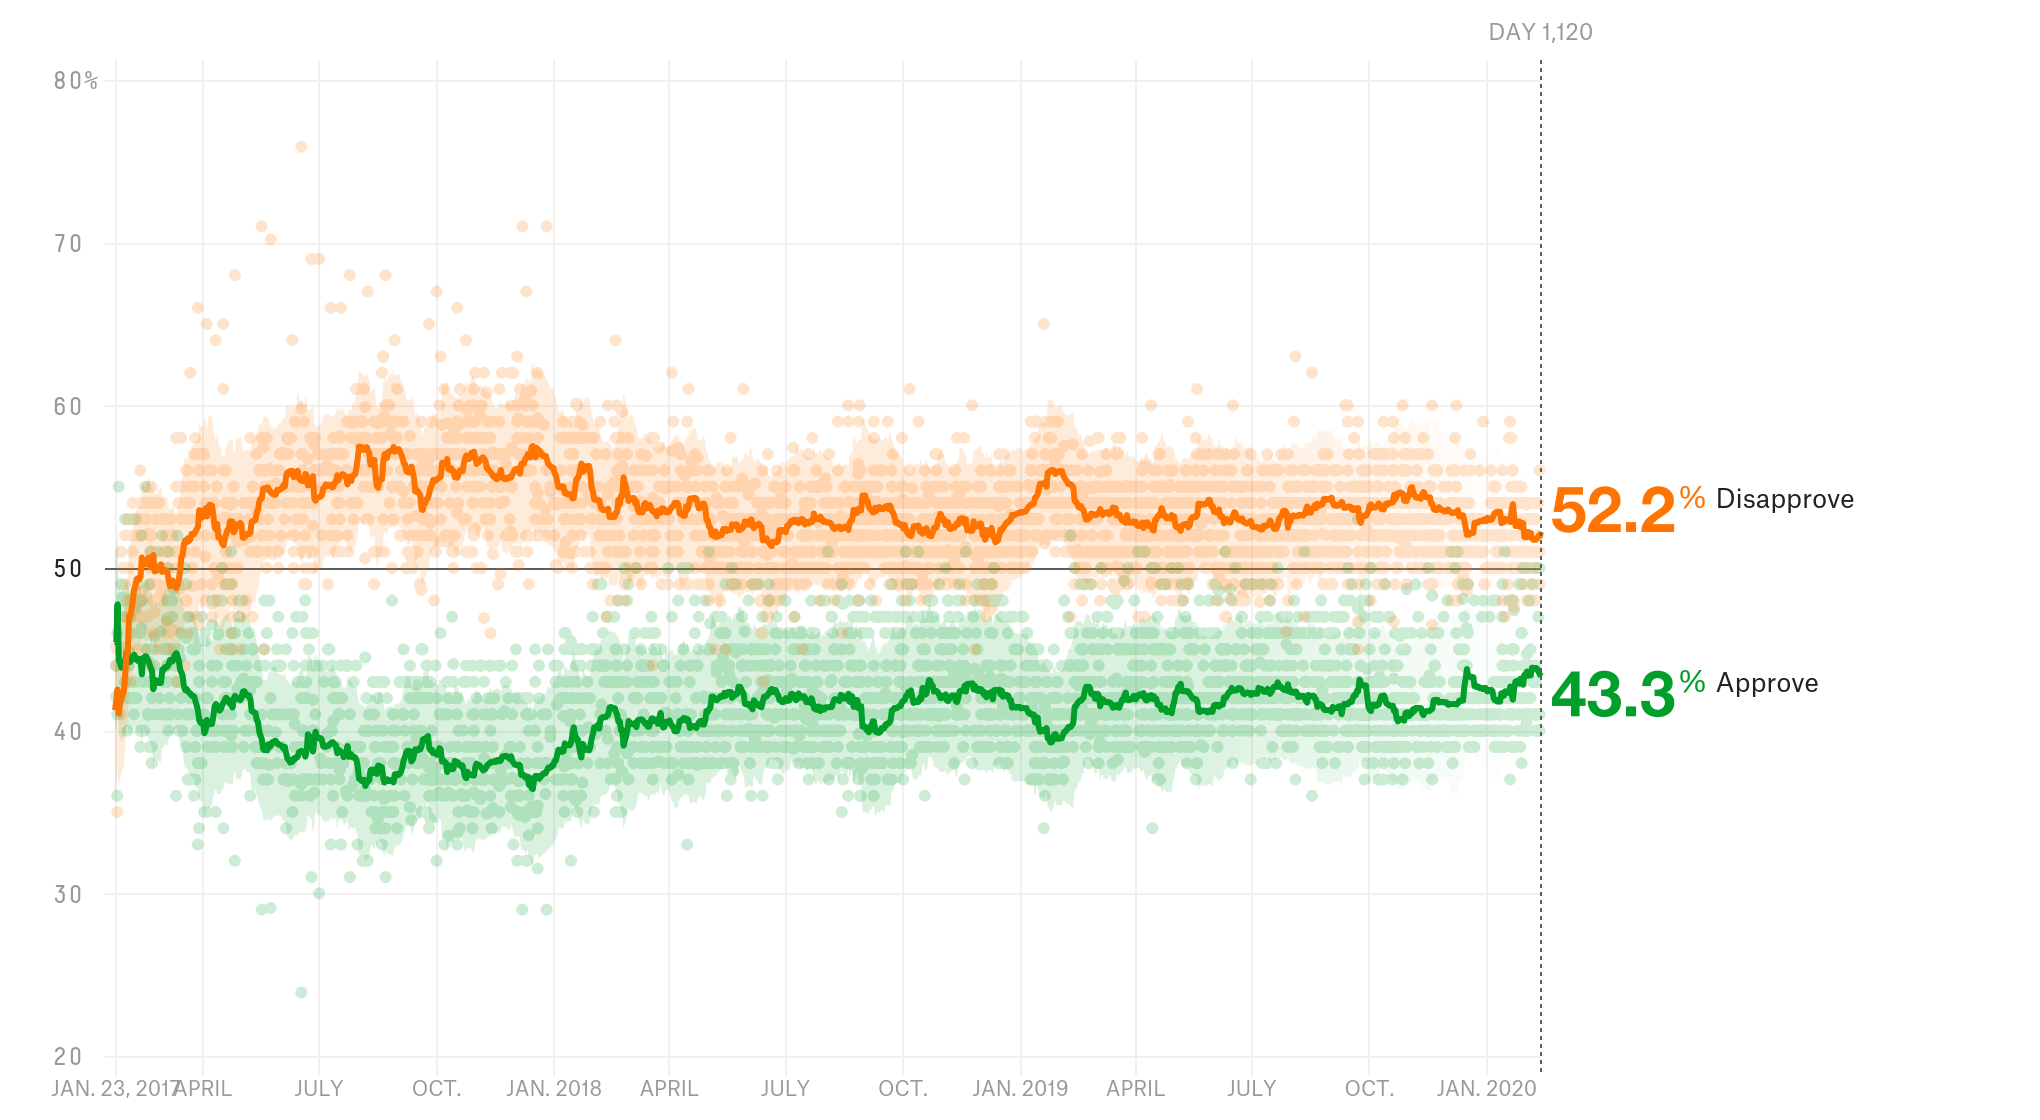 https://fivethirtyeight.com/wp-content/uploads/2020/02/trump-approval-full-0213.png